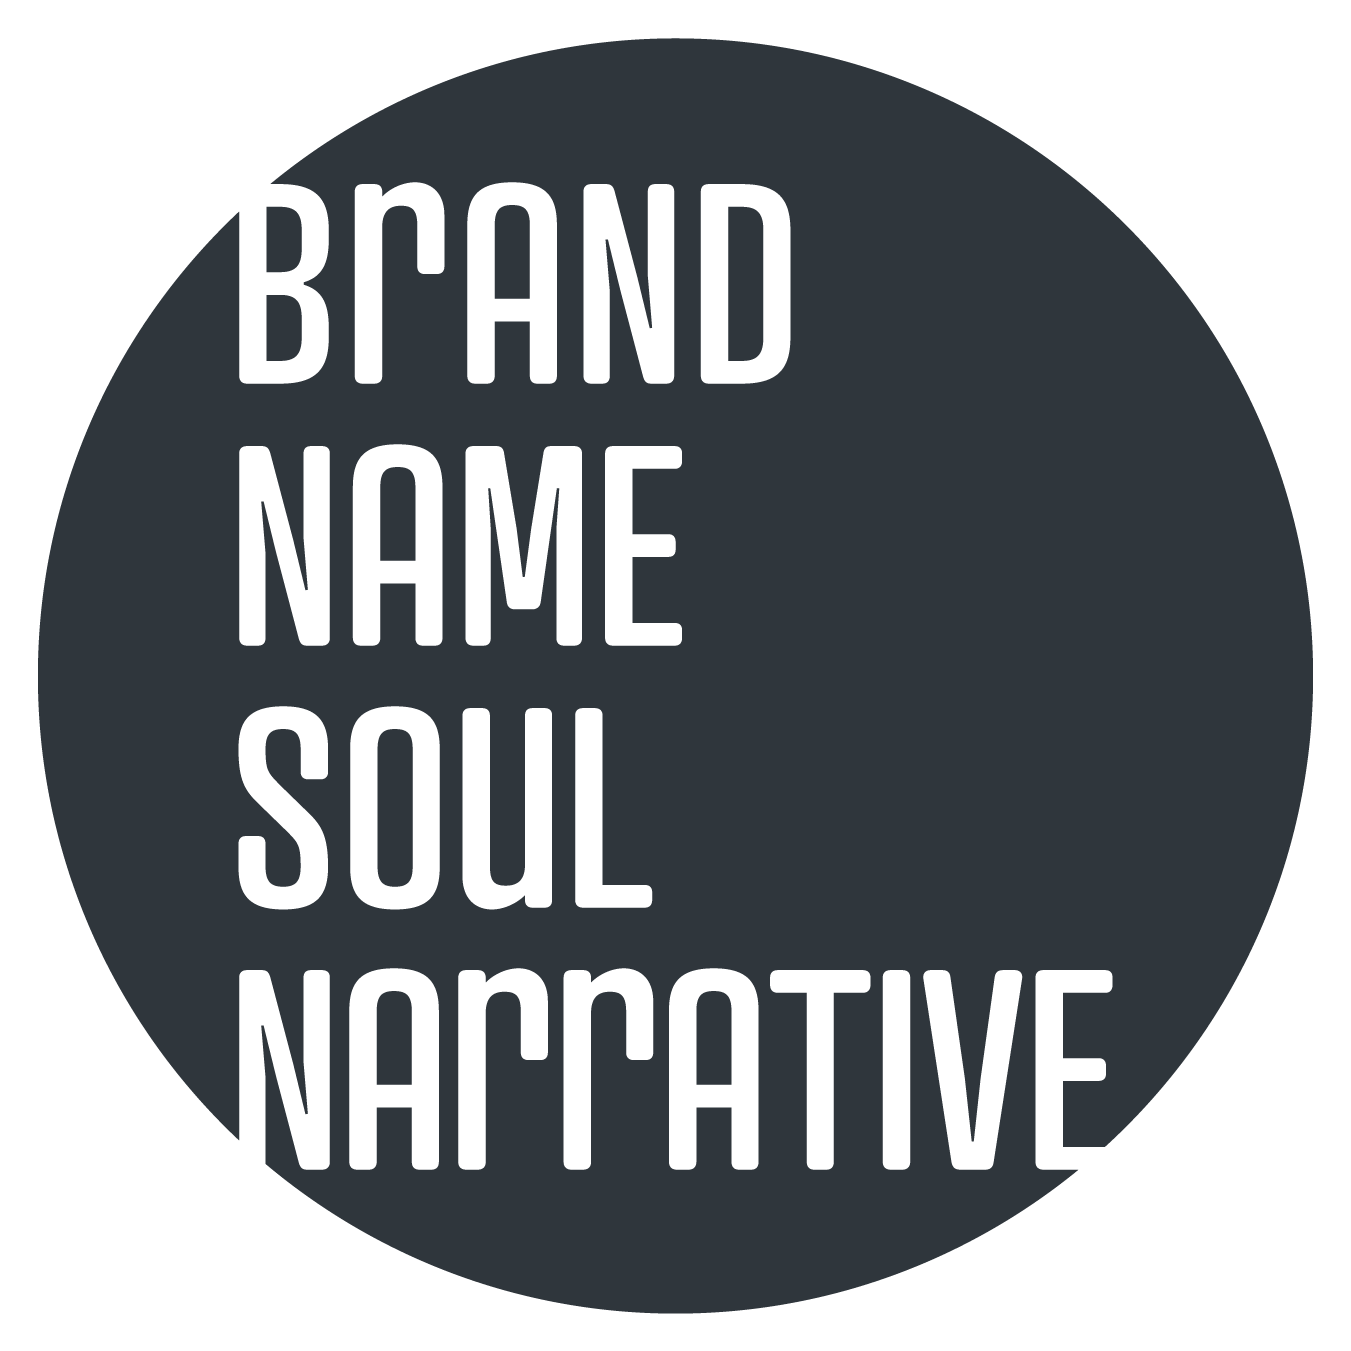 Brand Name Soul Narrative